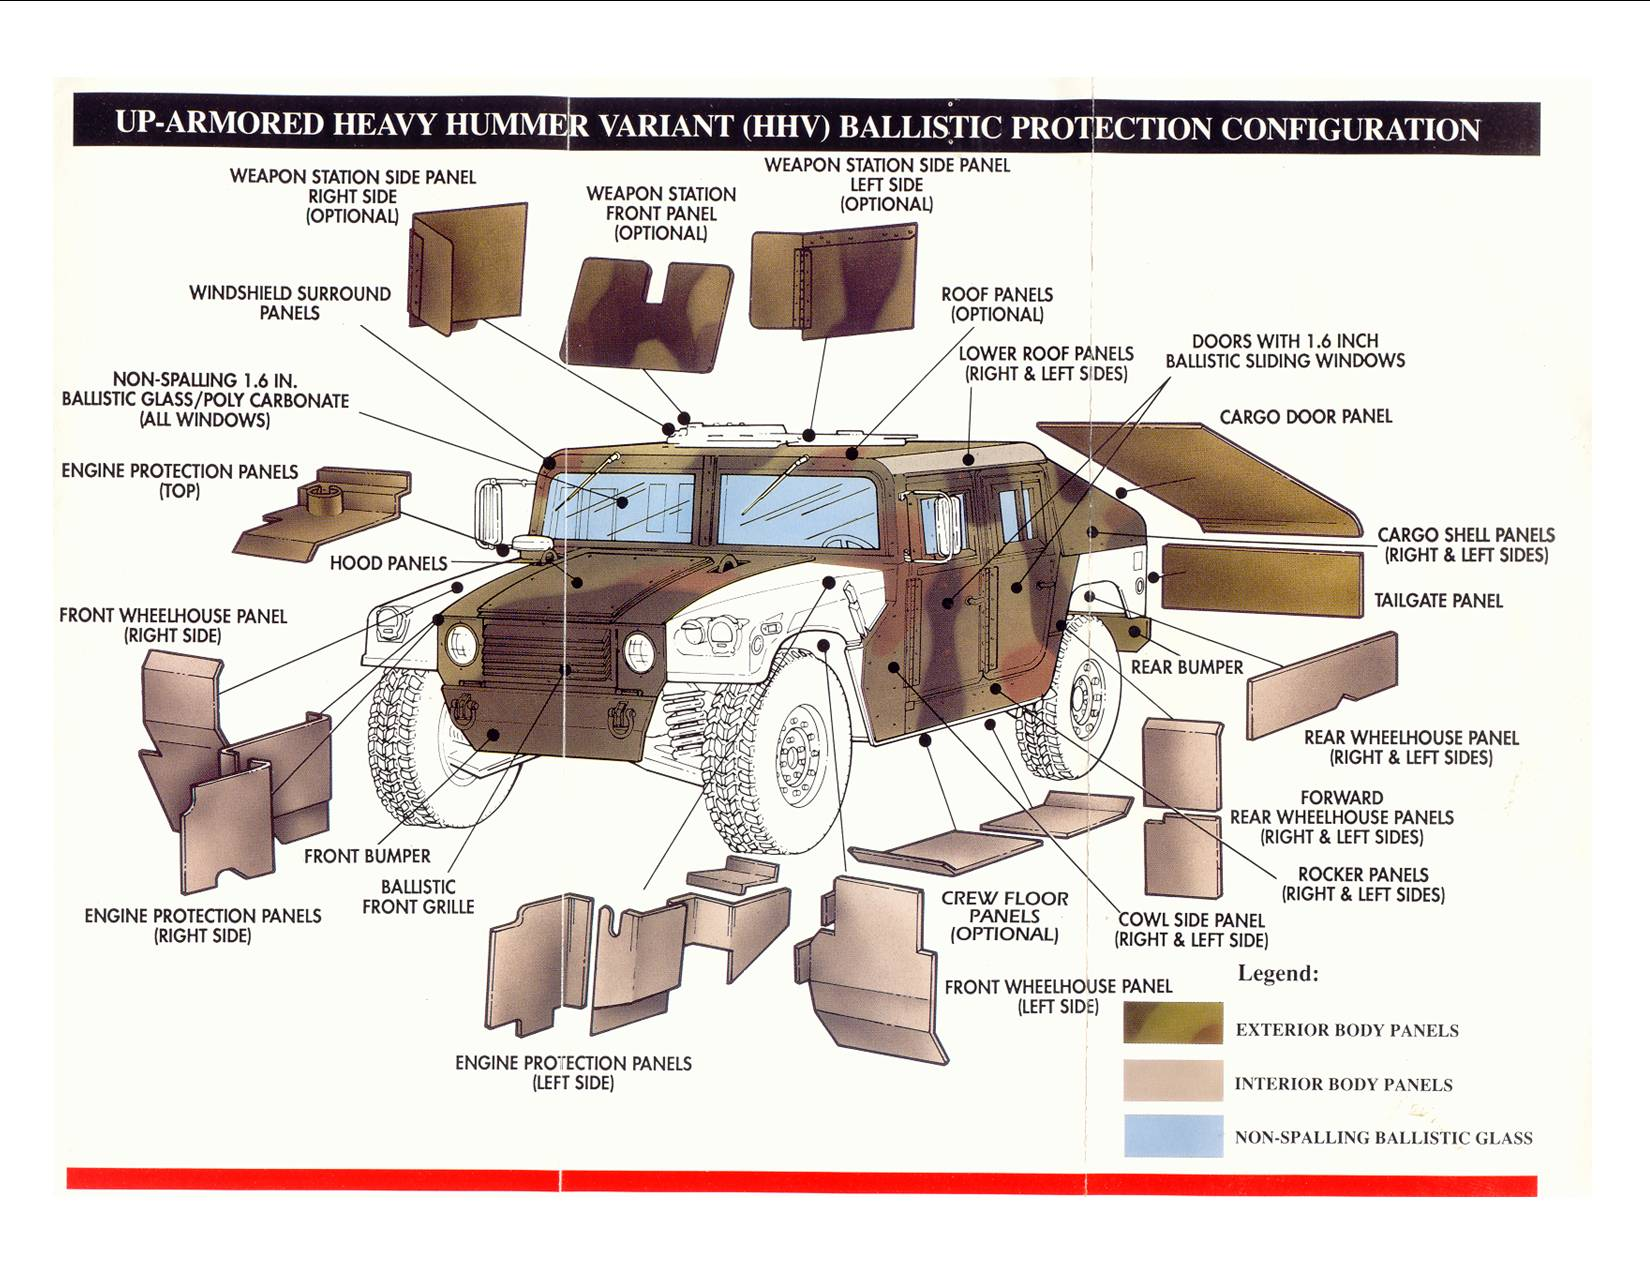 military vehicle schematic with 2001 Hmmwv M1025 A2 Up Armored on Viewtopic moreover 806908 furthermore Maxson Quad 50 Caiber M45 also Vehicule 190 Navette T 2c Theta likewise L2 air ejectors fuelcells.